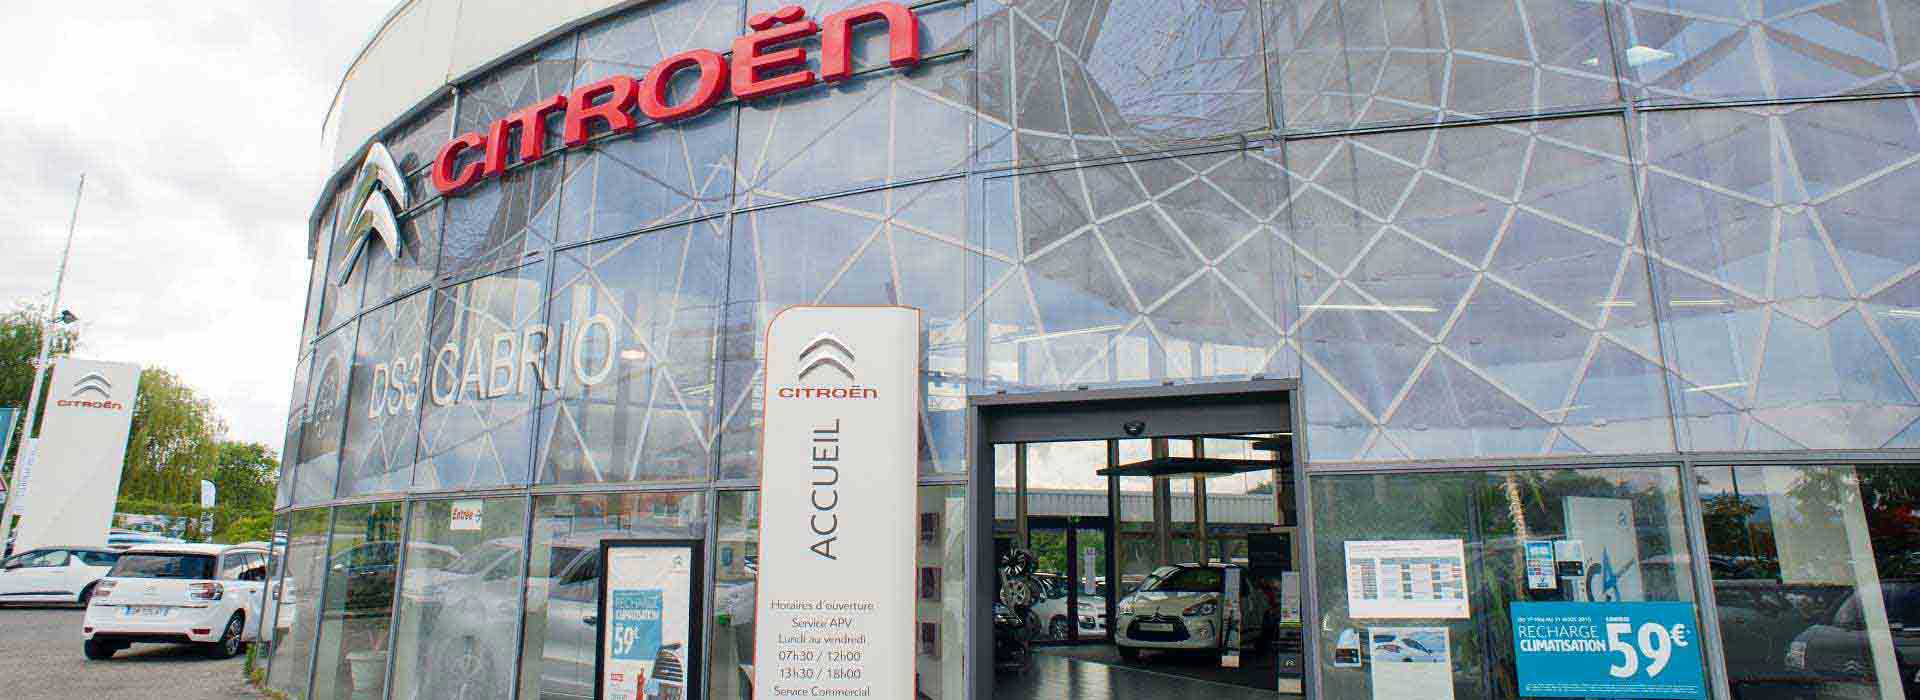 Citroen thonon les bains concessionnaire garage for Garage citroen thonon